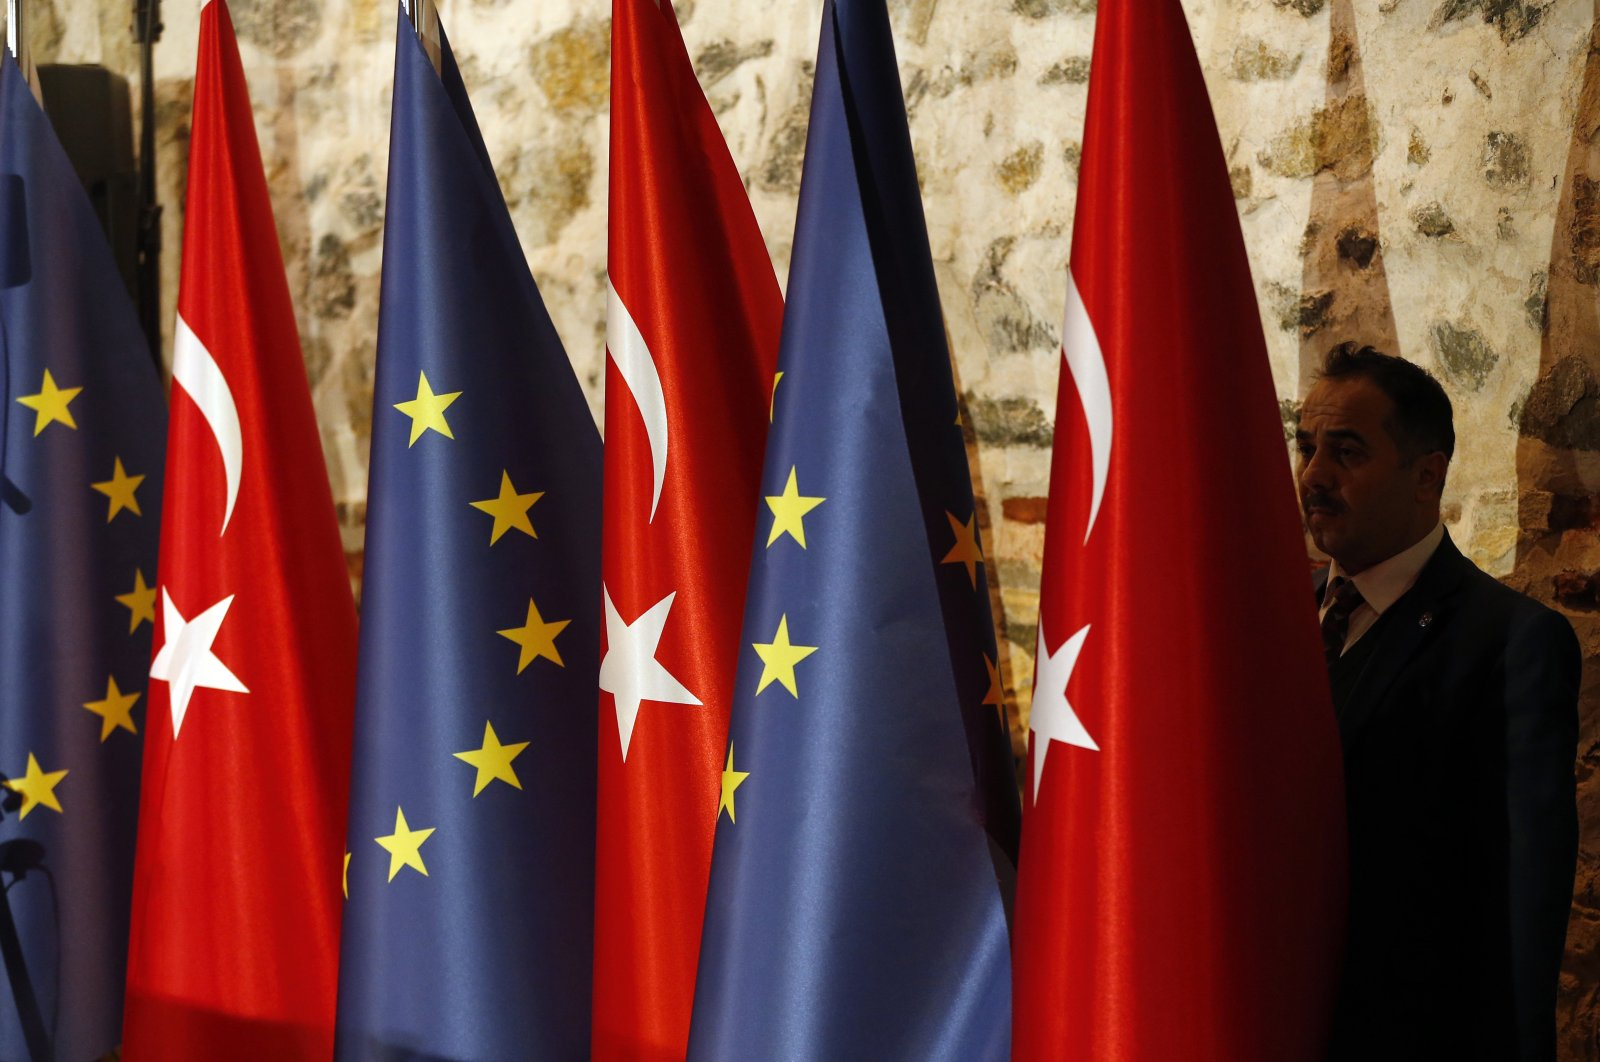 An official adjusts the flags of Turkey and the European Union prior to the opening session of a high-level meeting between the EU and Turkey, in Istanbul, Turkey, Feb. 28, 2019. (AP Photo)